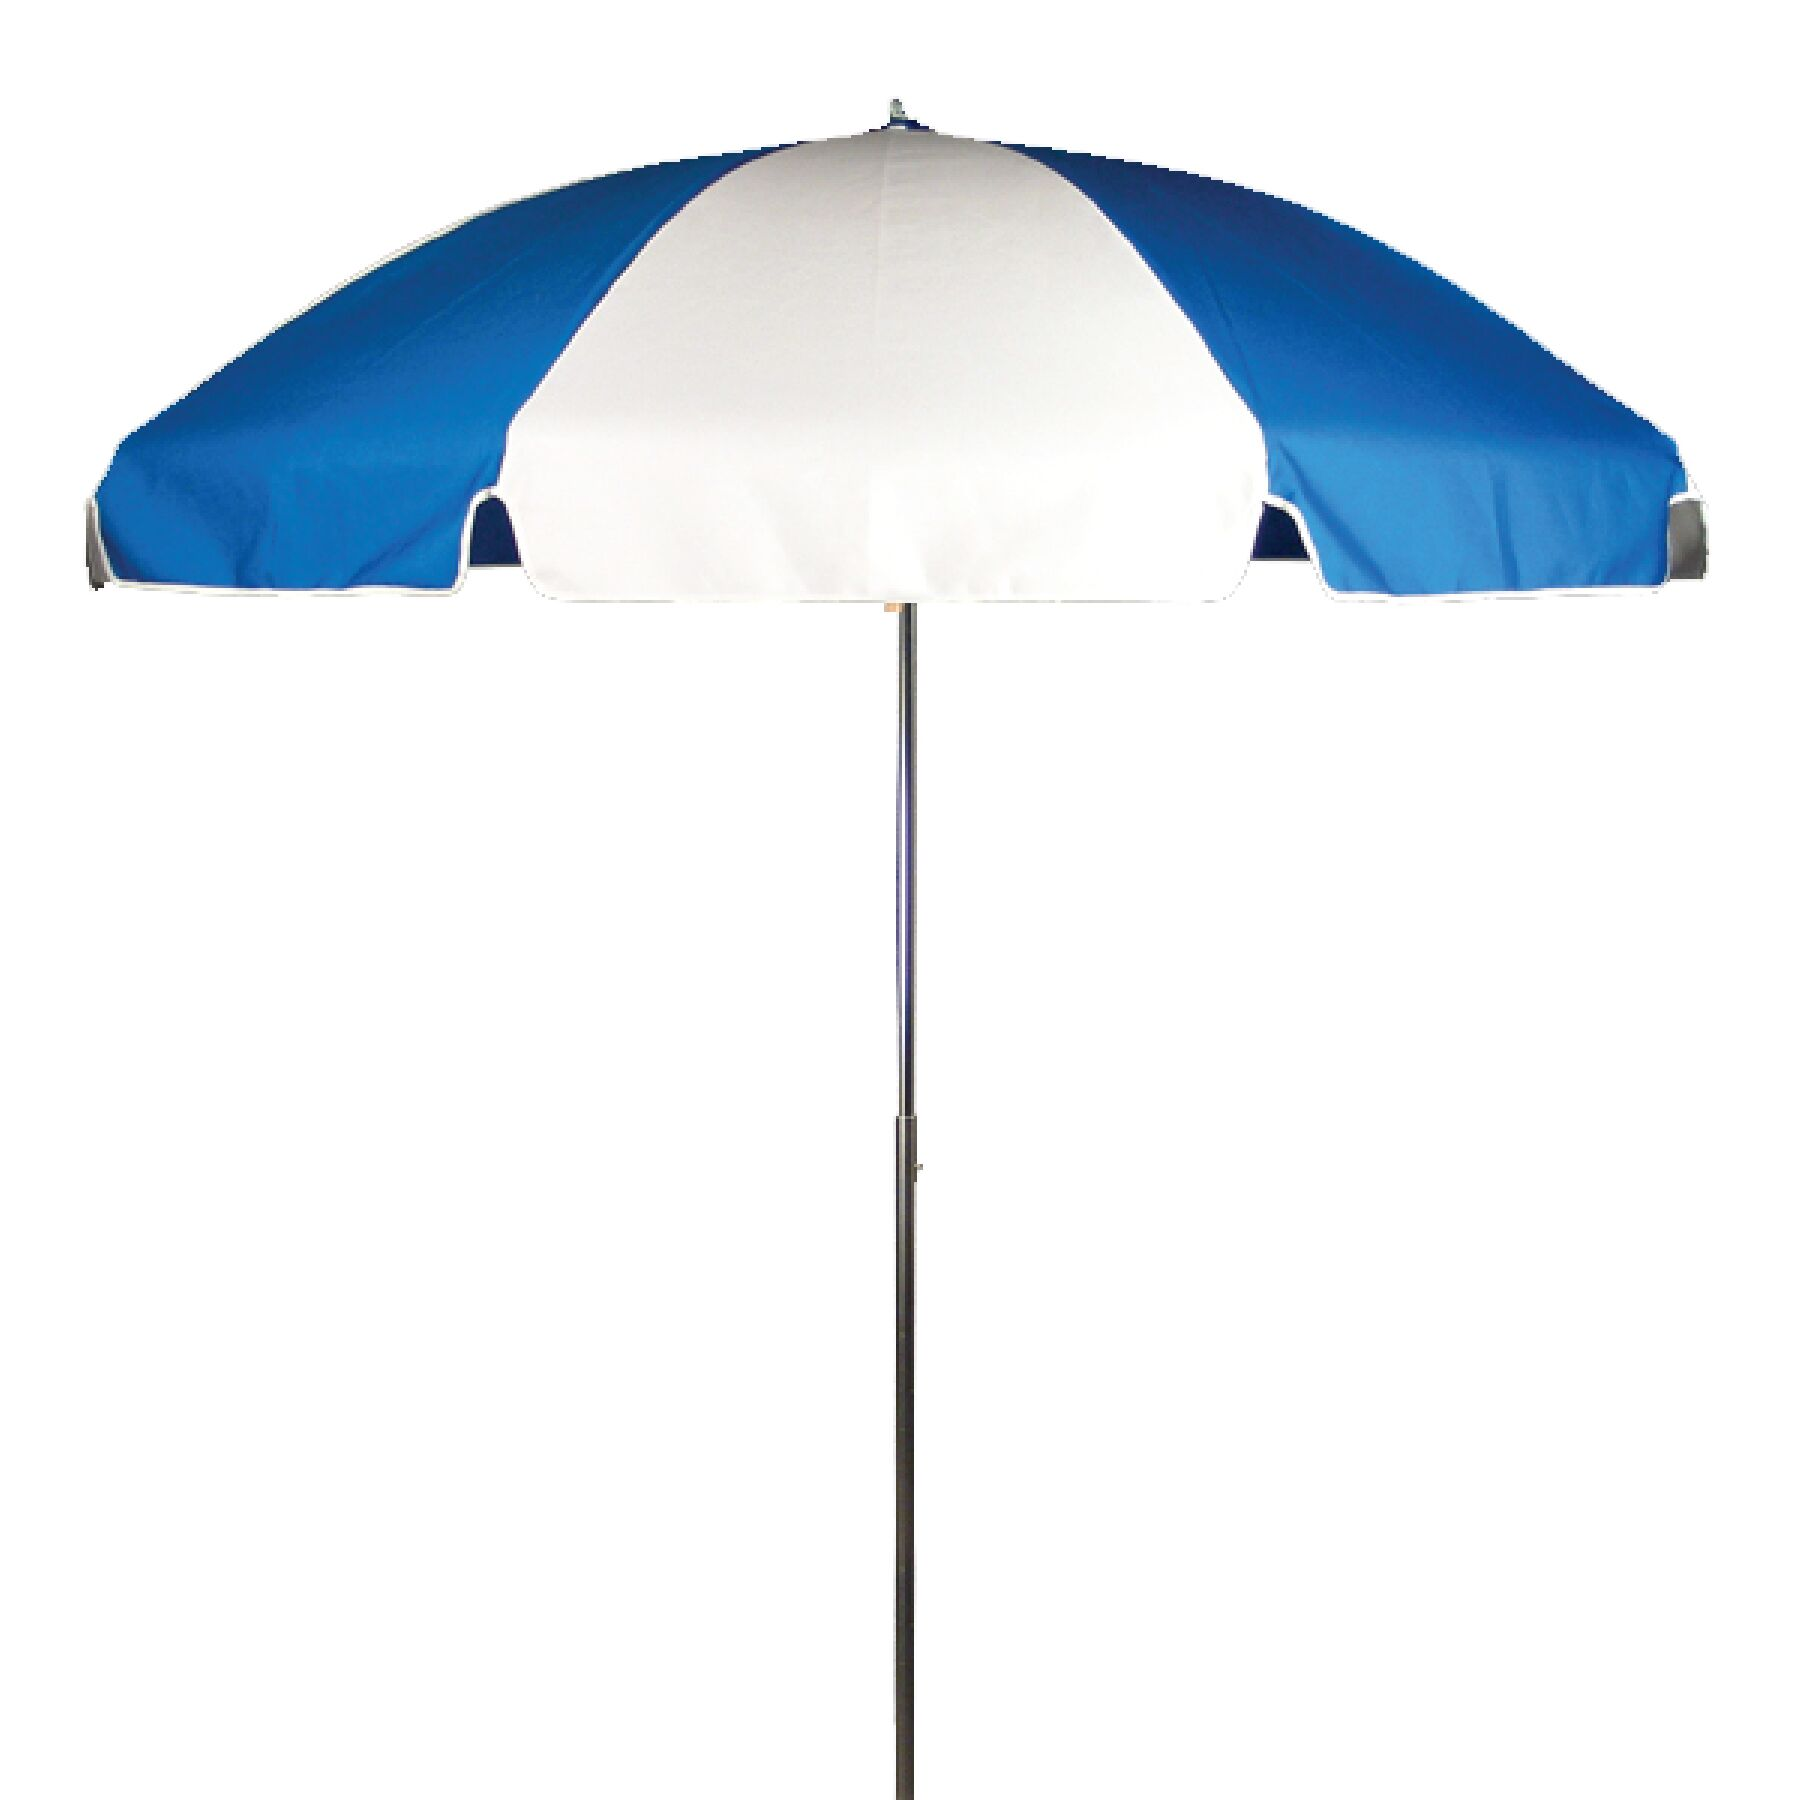 7.5' Drape Umbrella Fabric: Pacific and White